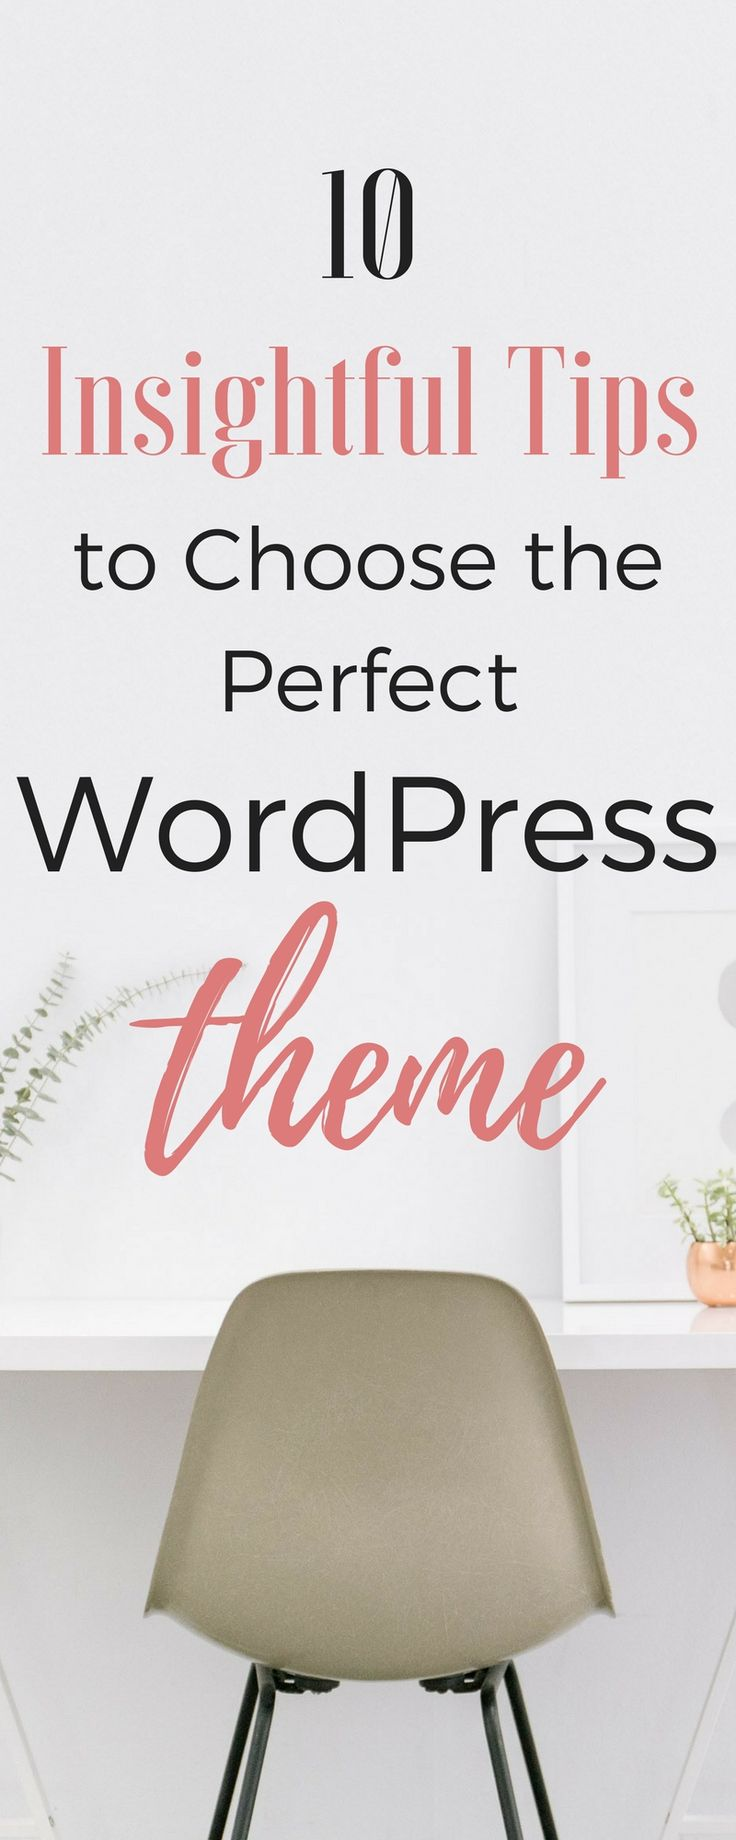 Choose the perfect WordPress theme with these 10 tips!